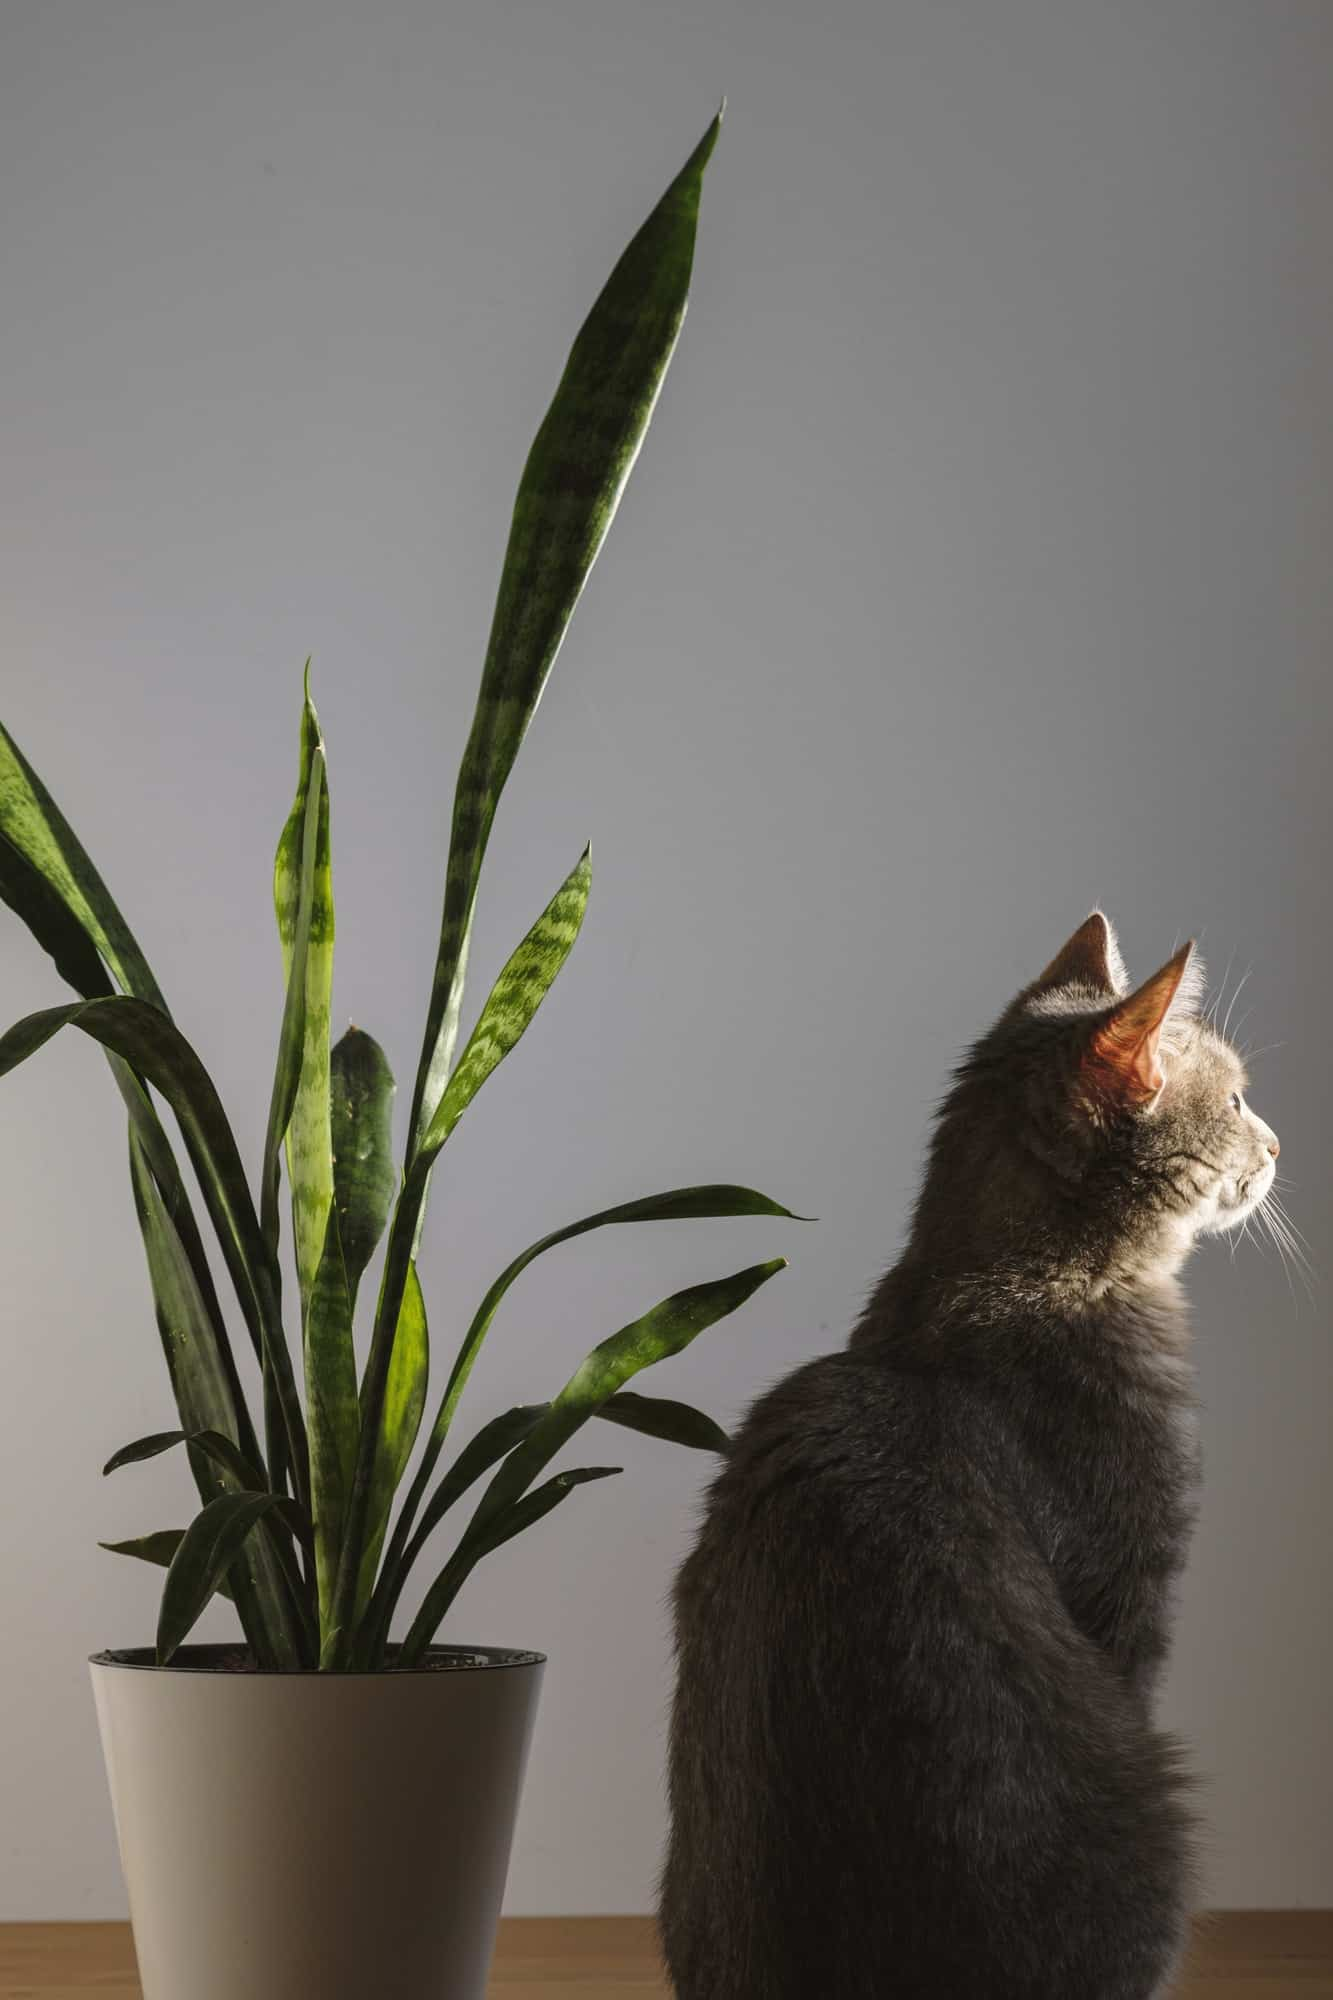 Gray striped domestic cat sitting on wooden table nearby Sansevieria.